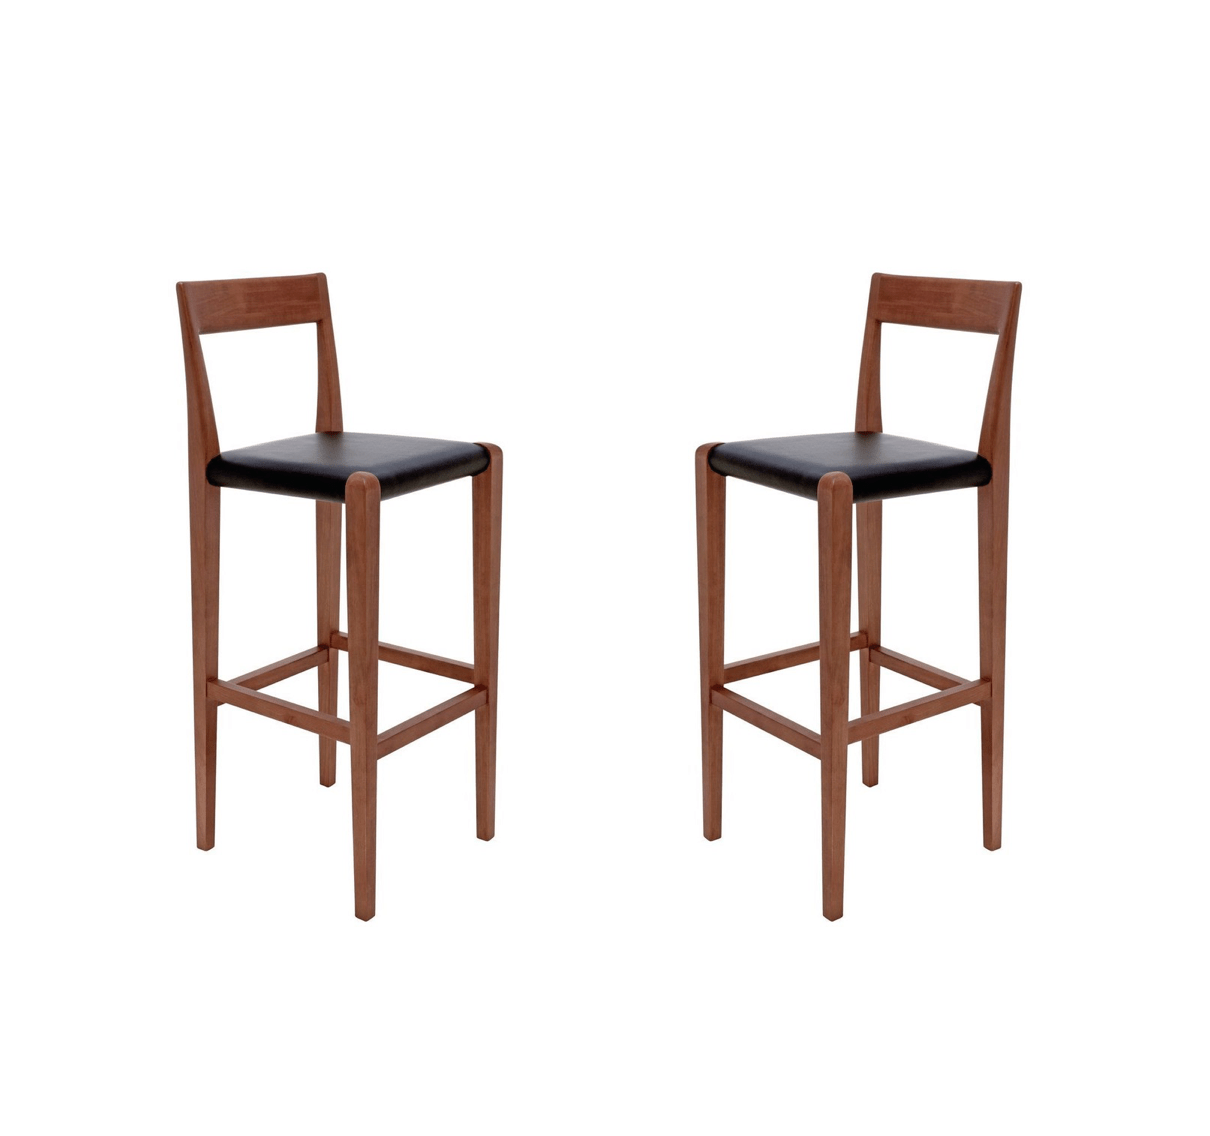 28 Barstools New Pair Of Nuevo Ameri Leather Barstools Original Price 1 166 Design Plus Gallery